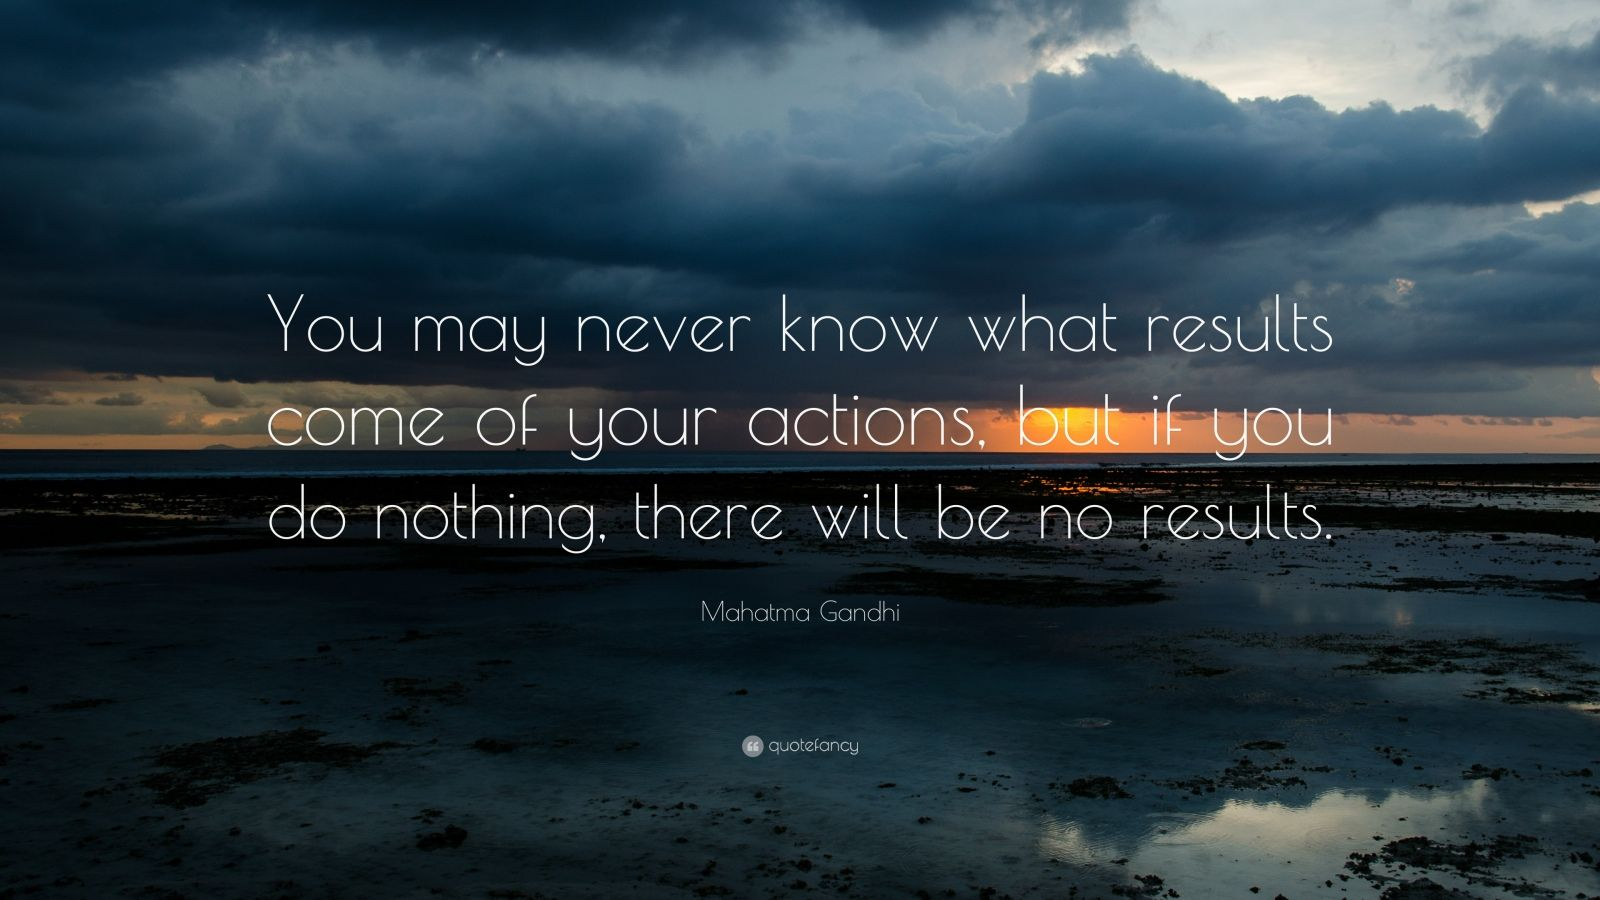 """Mahatma Gandhi Quote: """"You may never know what results come of your actions, but if you do nothing, there will be no results."""""""